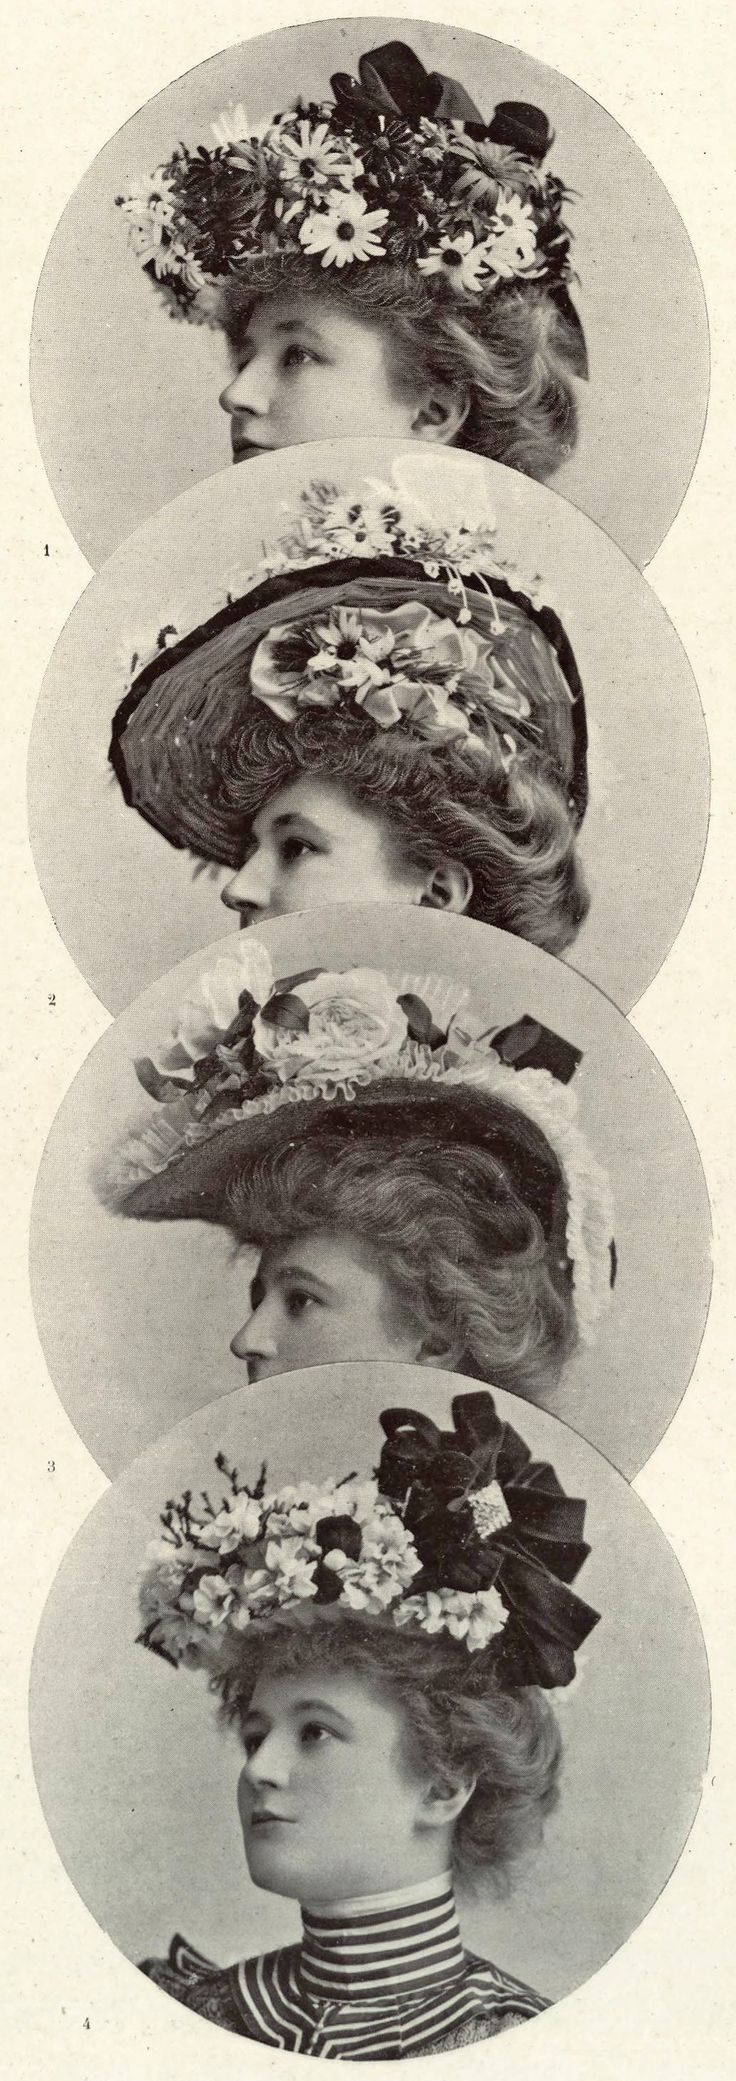 1901 May, Les Modes Paris - Hats of the season by Maison Nouvelle